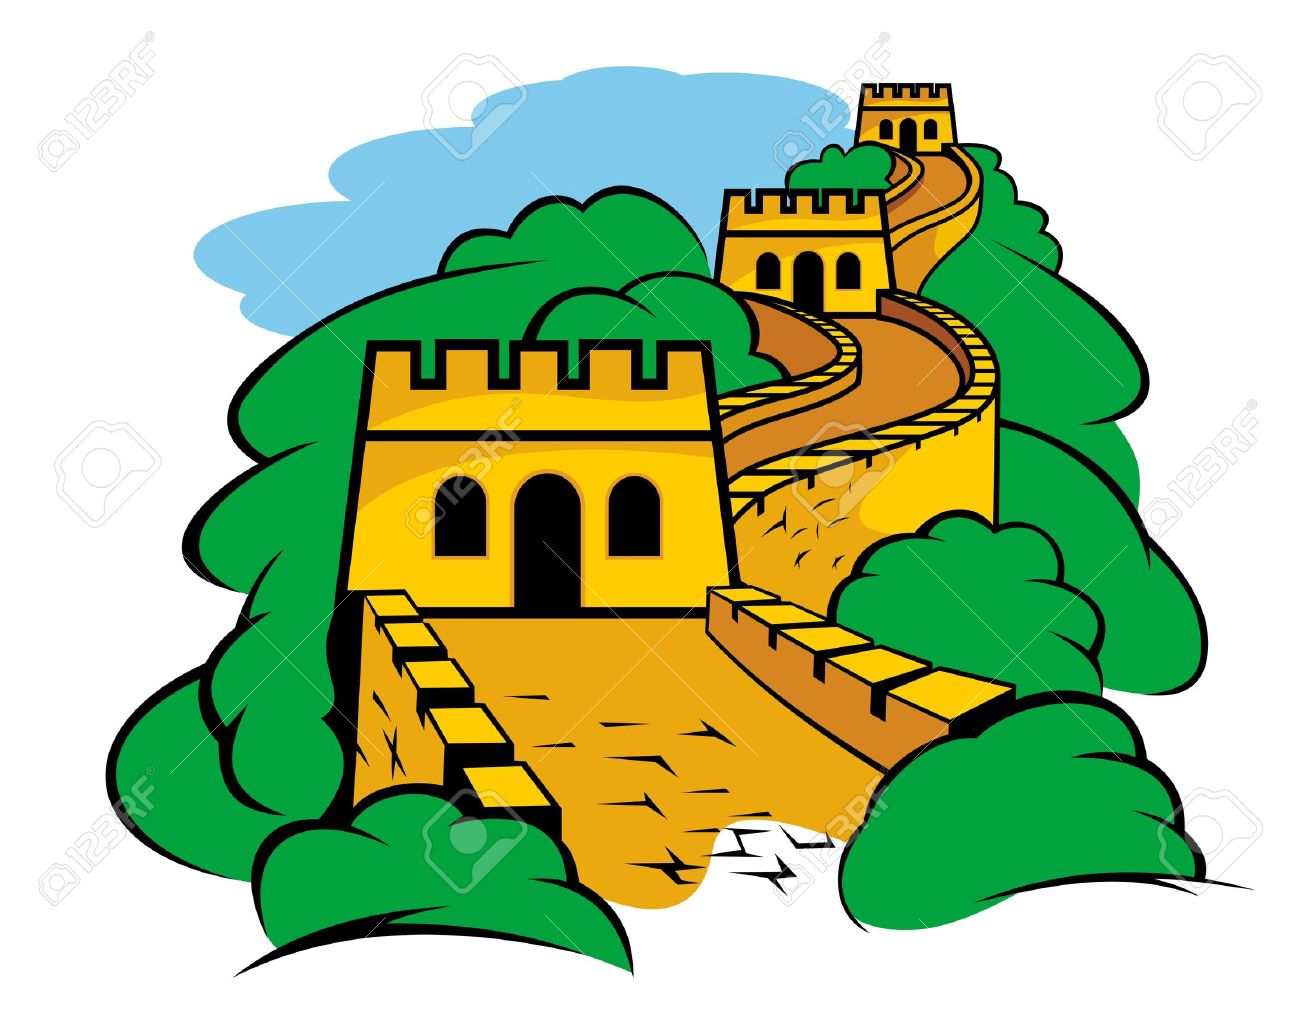 Chinese great wall landscape. China clipart medieval